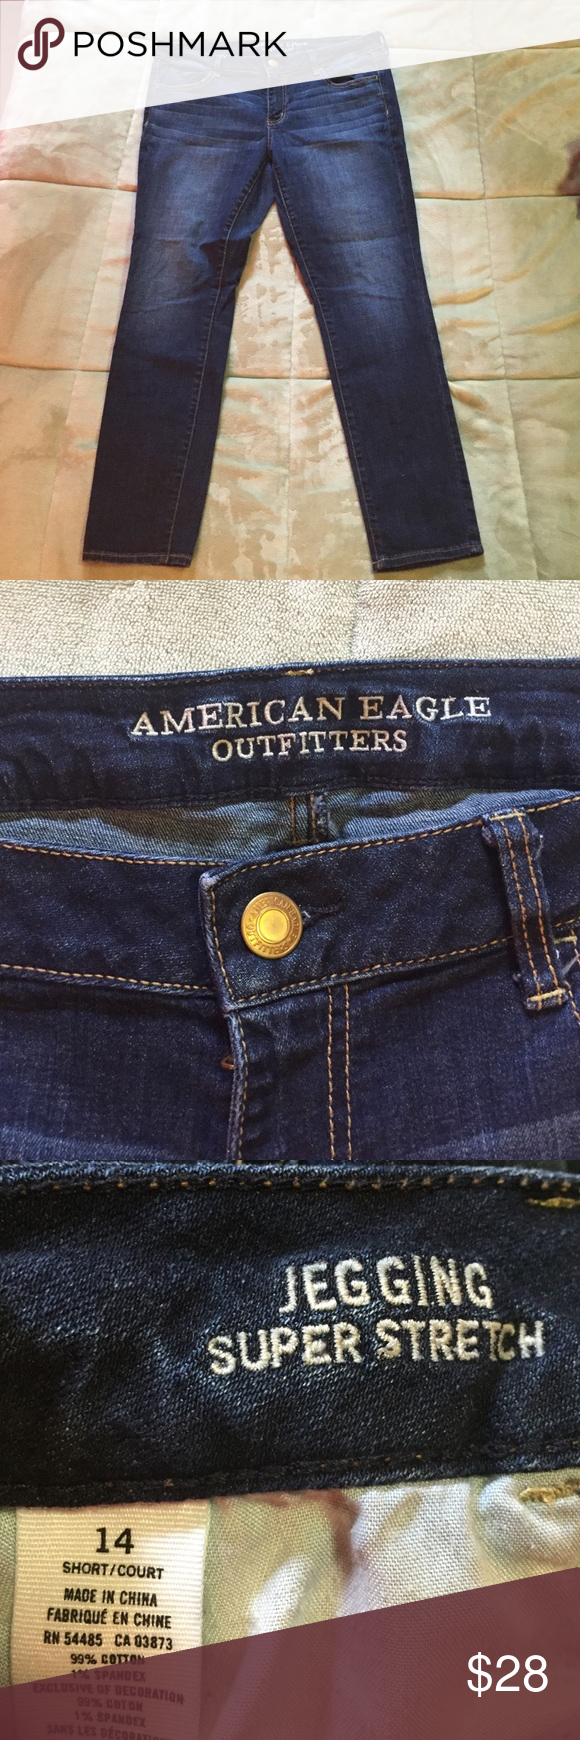 AE jeggings AE super stretch jeggings size 14 short, great condition! American Eagle Outfitters Jeans